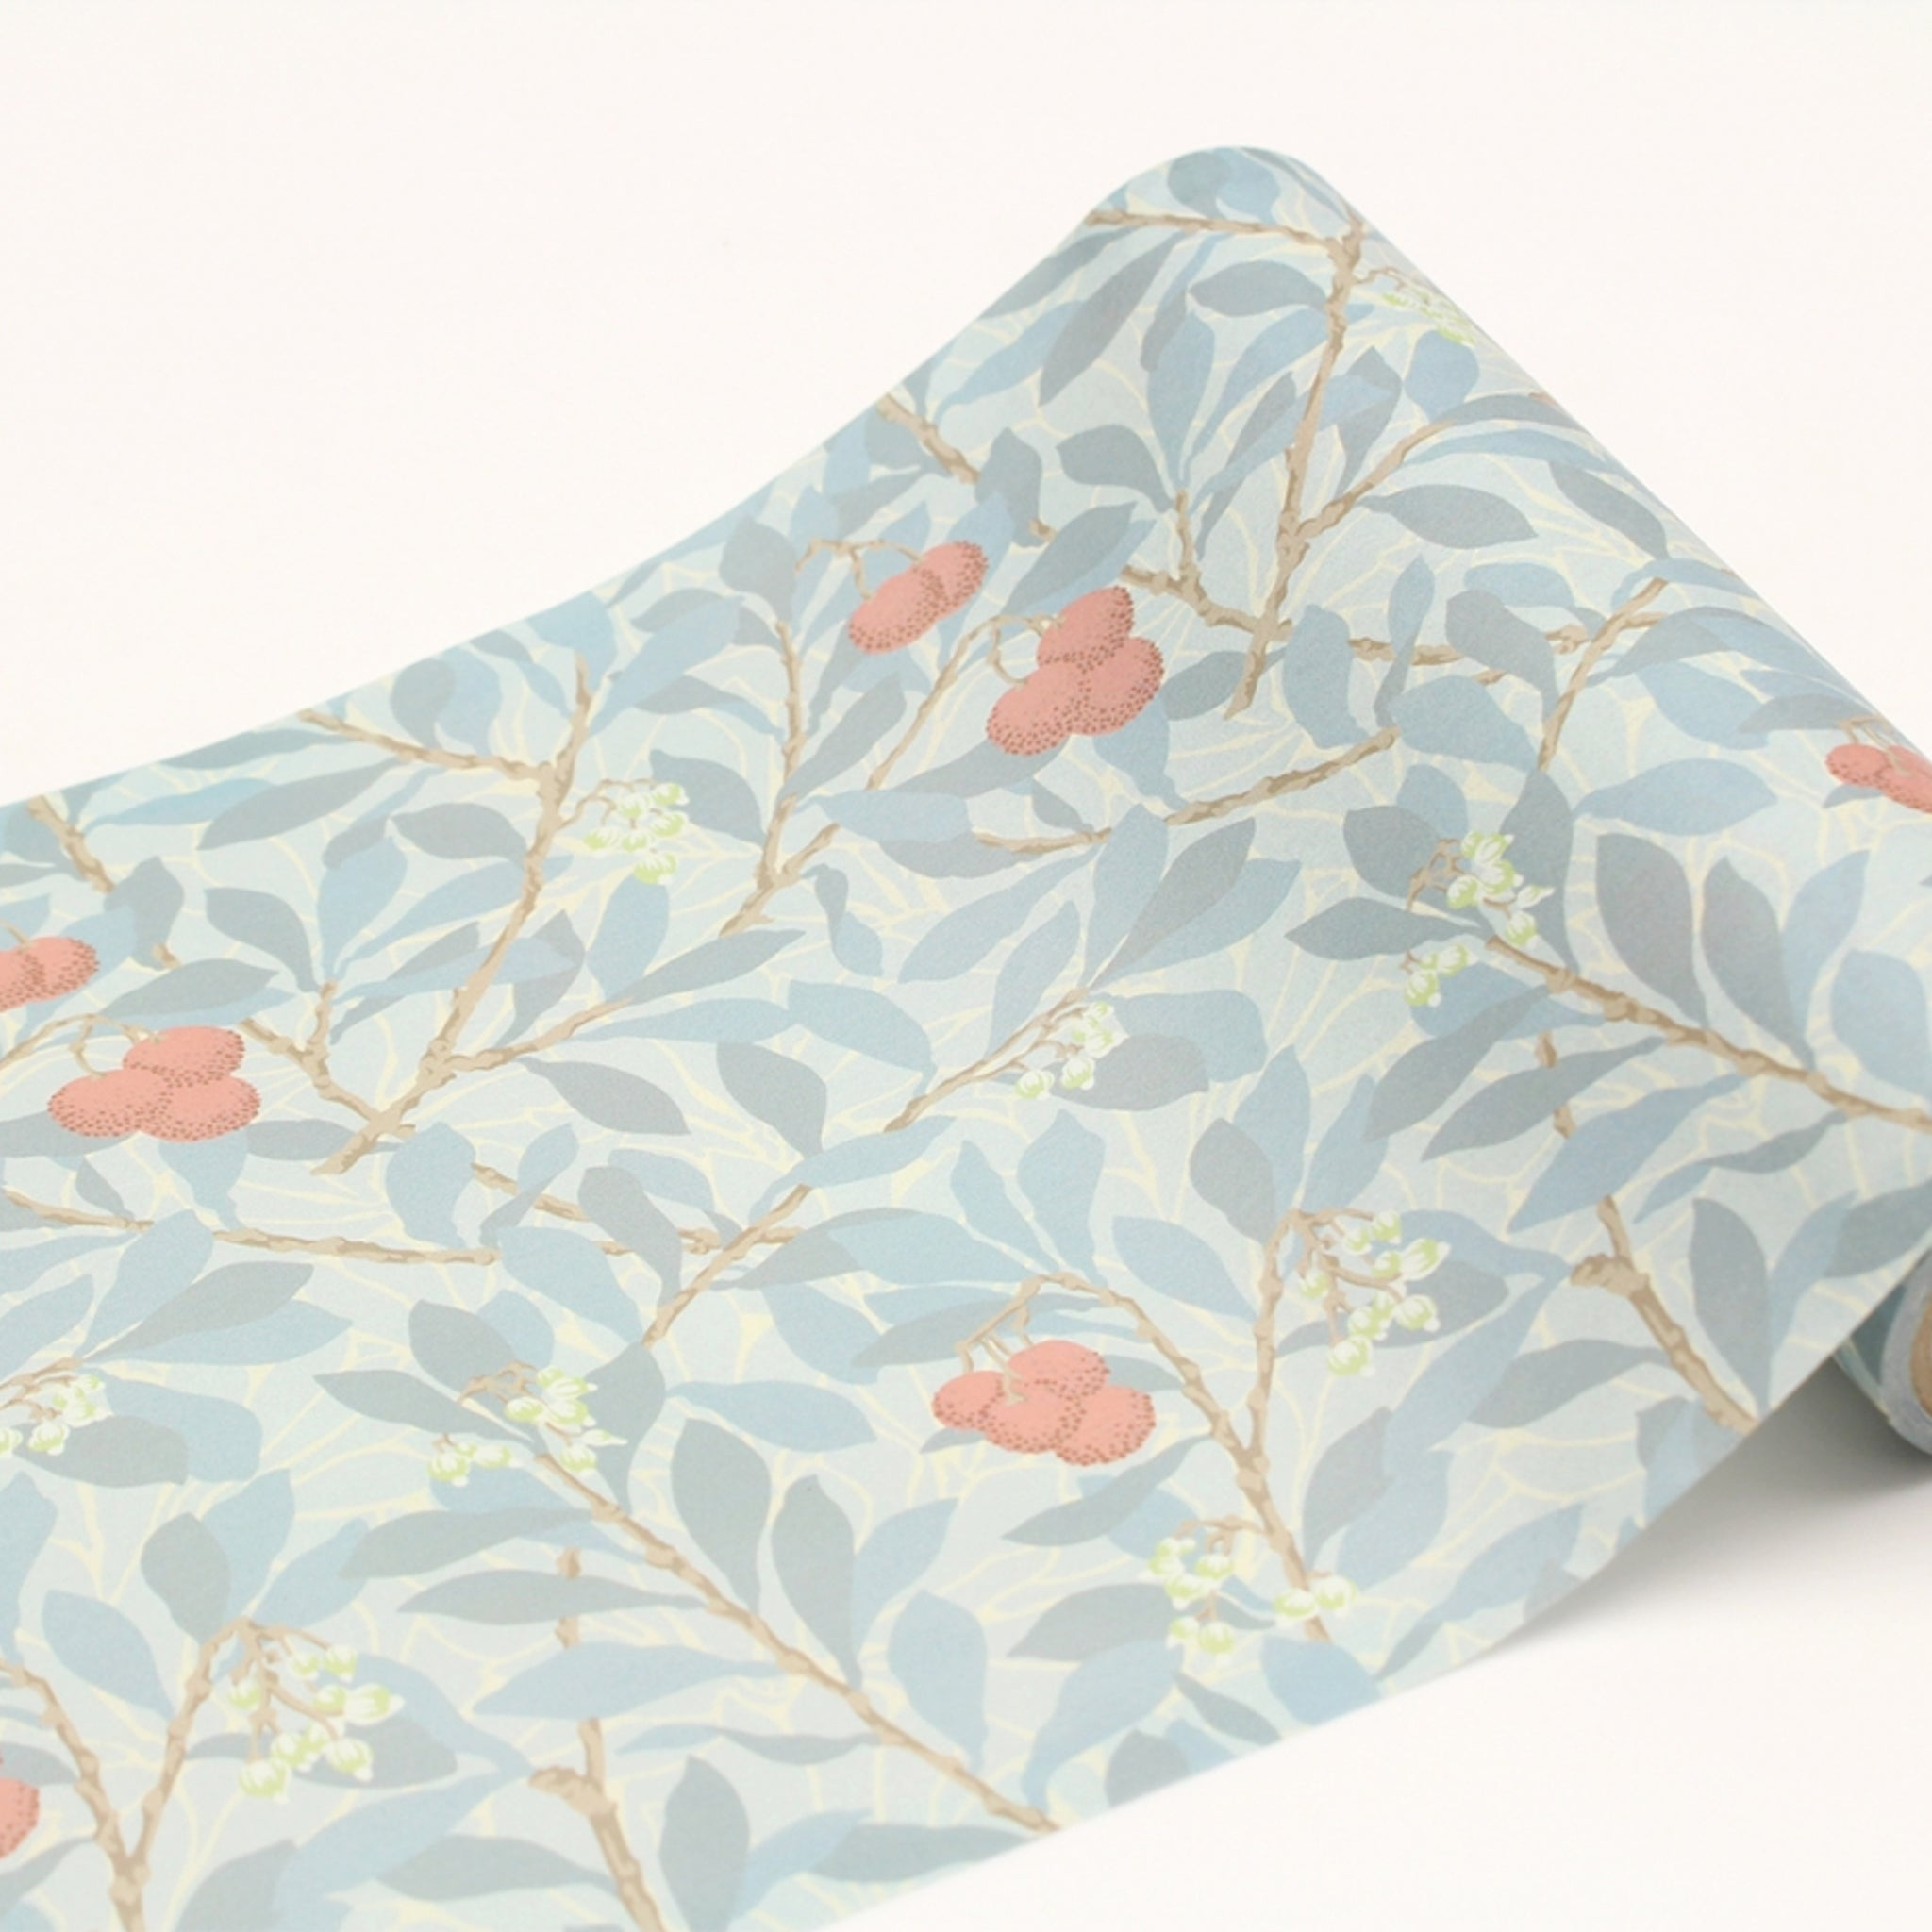 MT Wrap S William Morris Arbutus